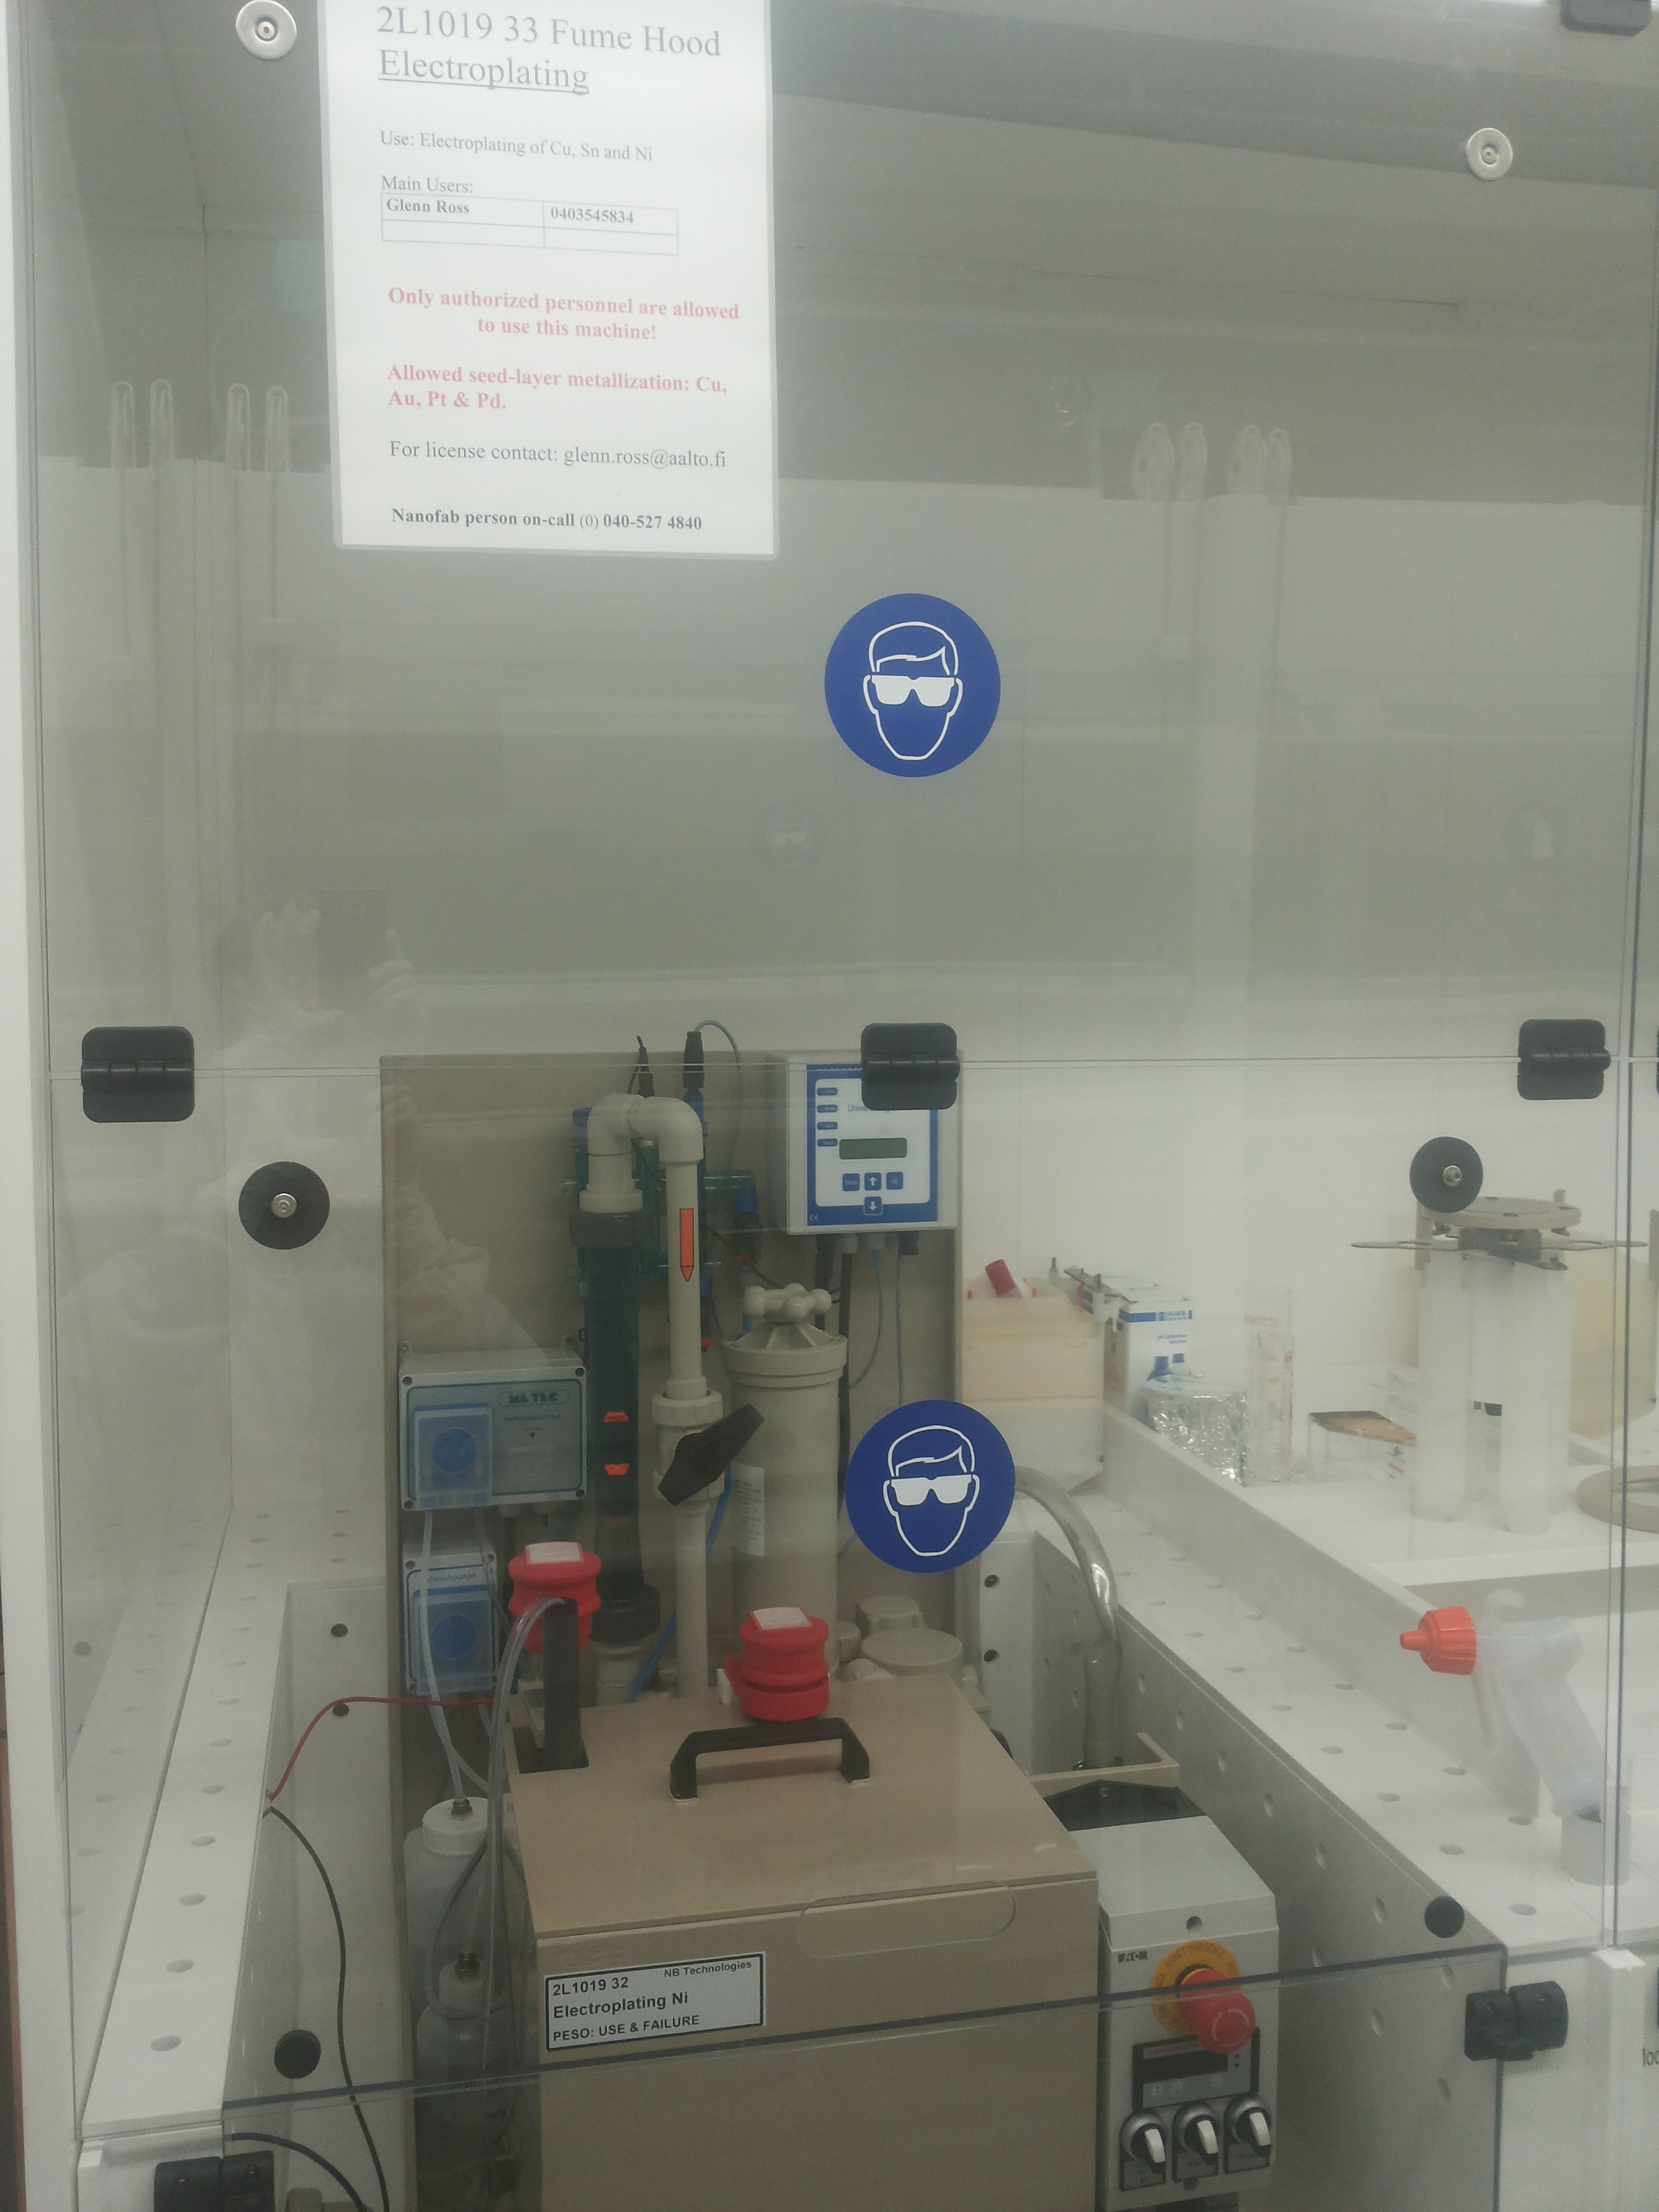 Picture of Fume Hood Electroplating